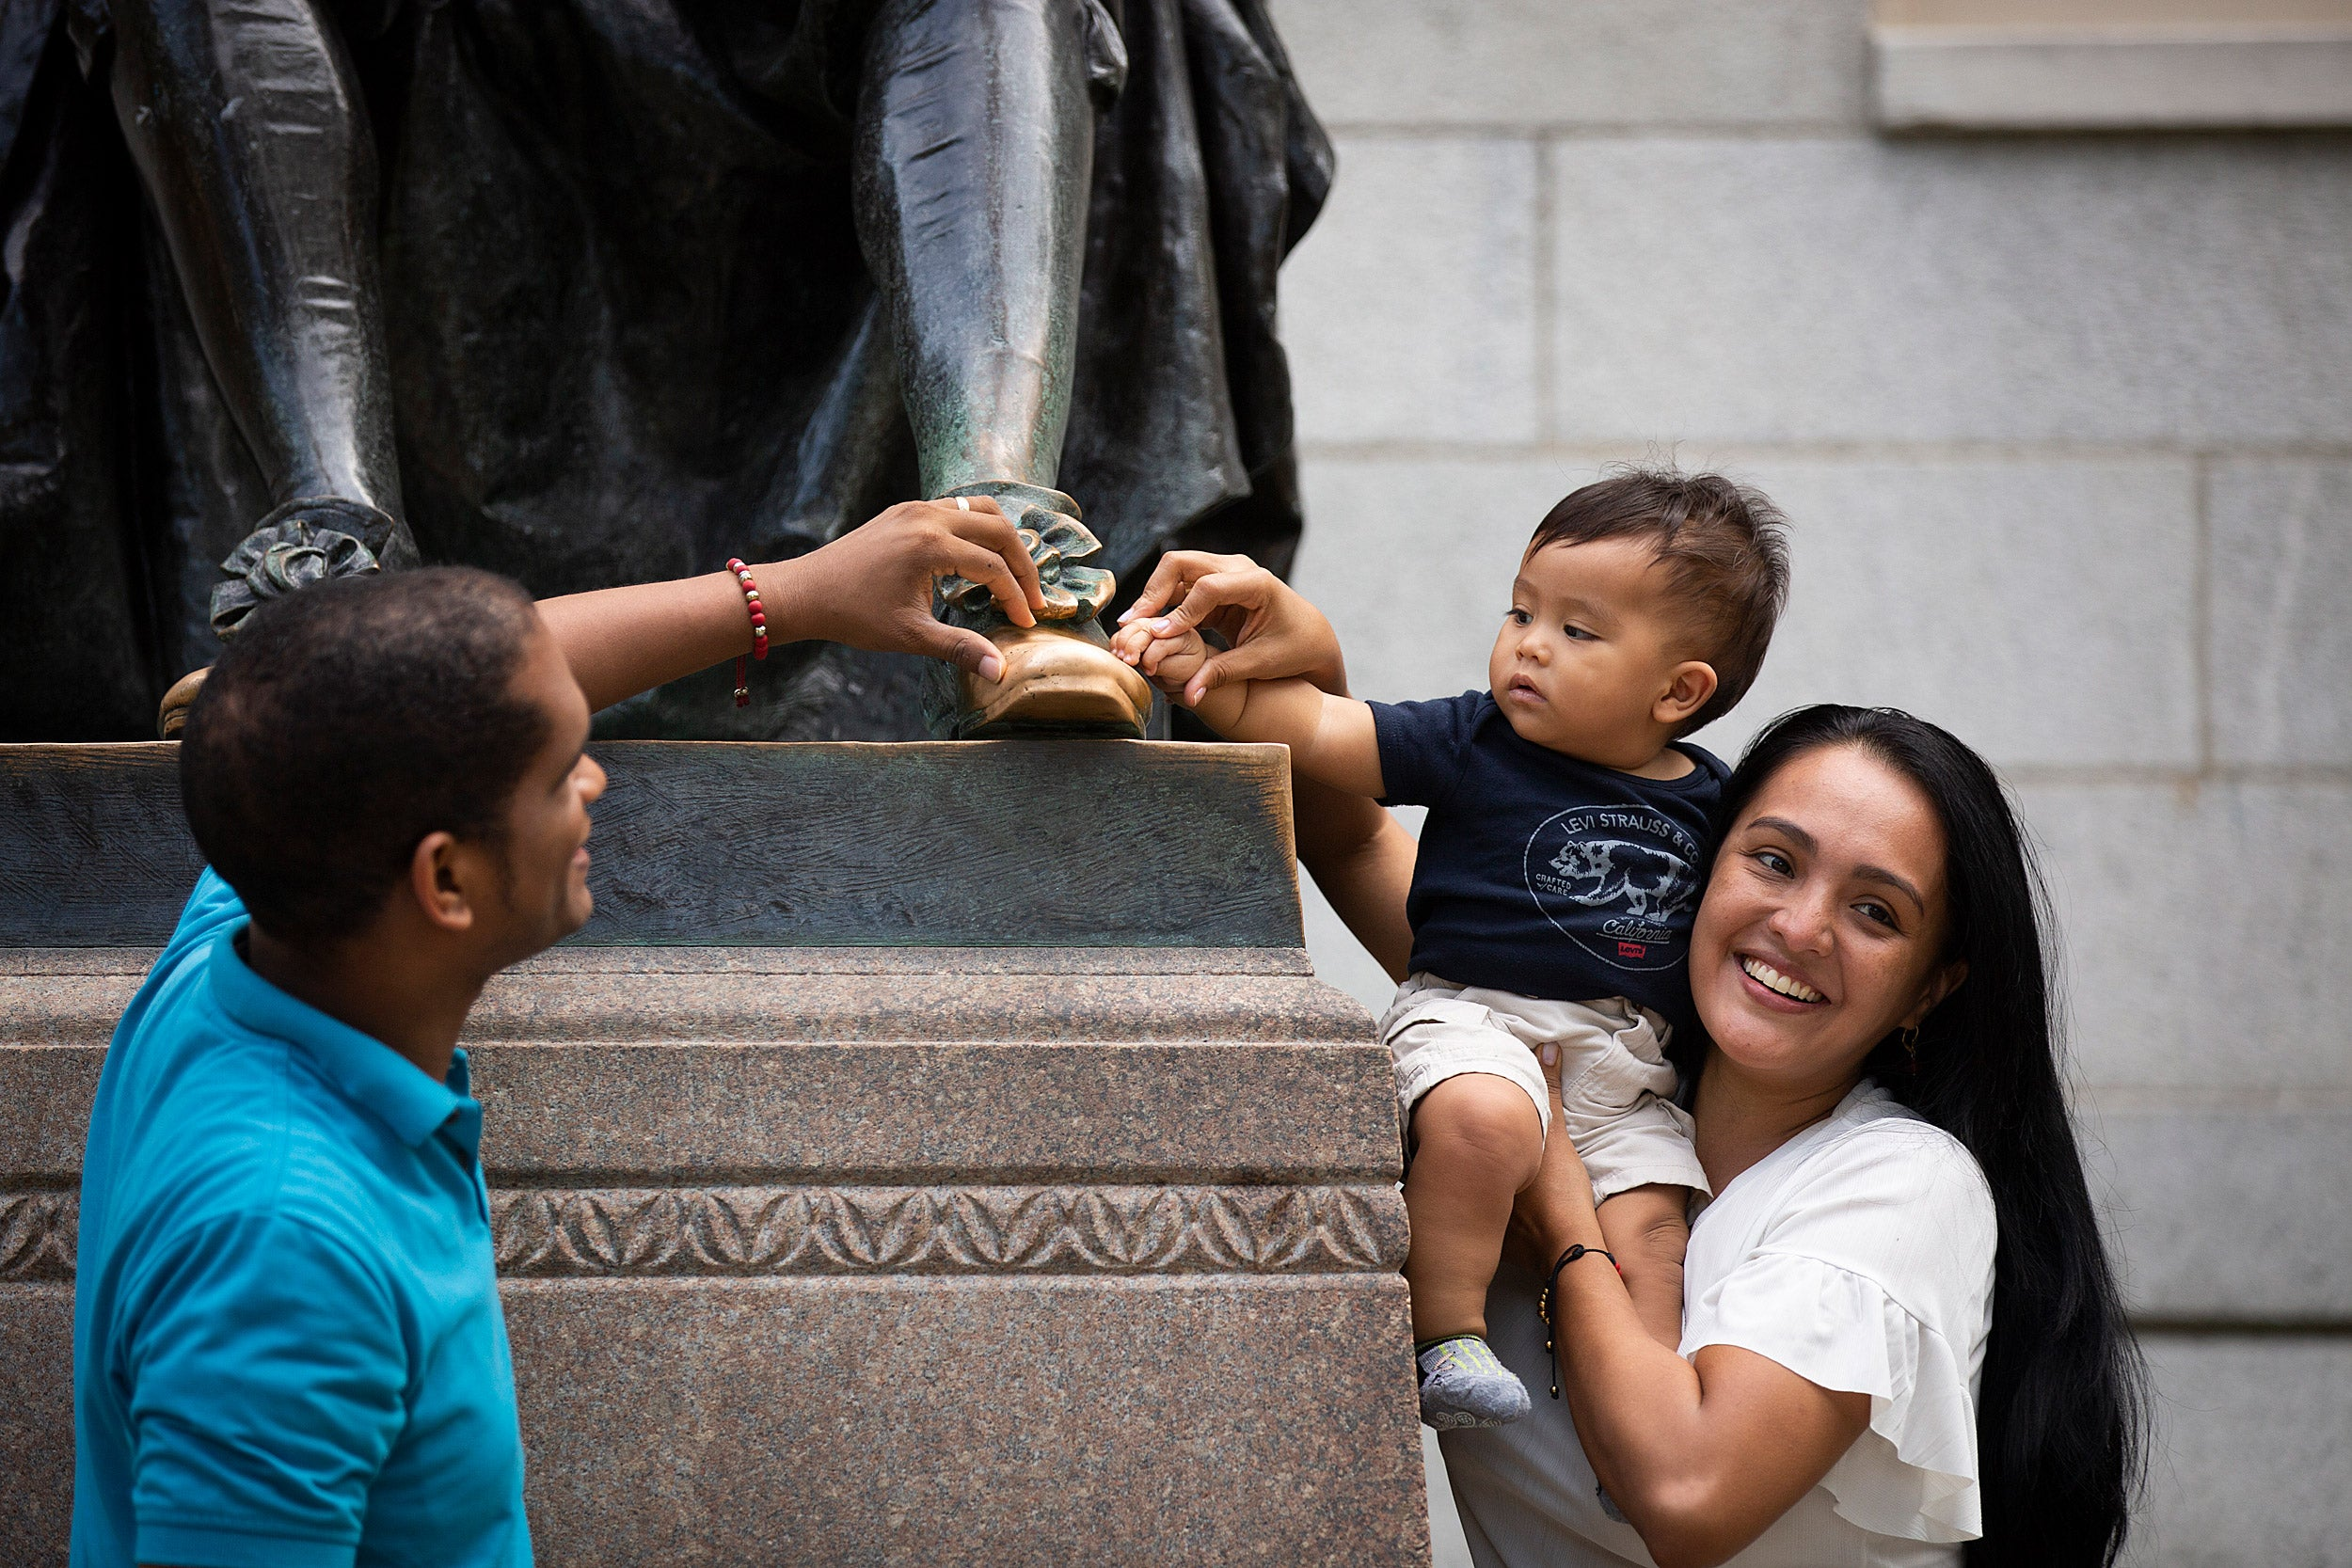 A couple with 9-month-old child pose at the foot of the sculpture.